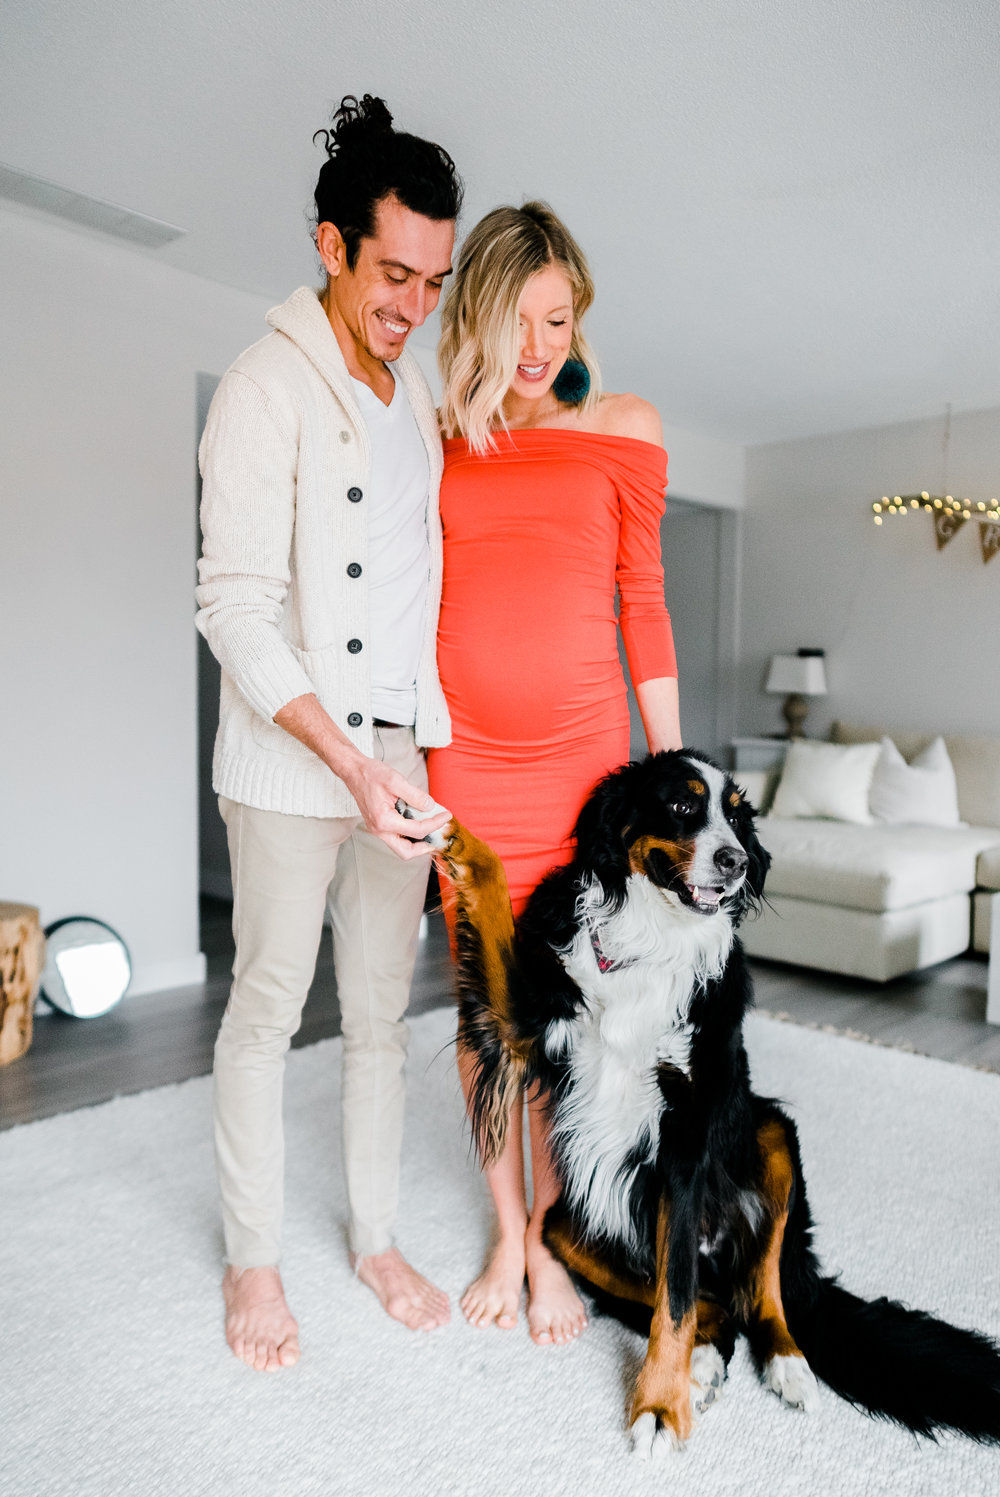 EatMoveRest.com | Dusty & Erin Stanczyk, Beau & Baby December 2018